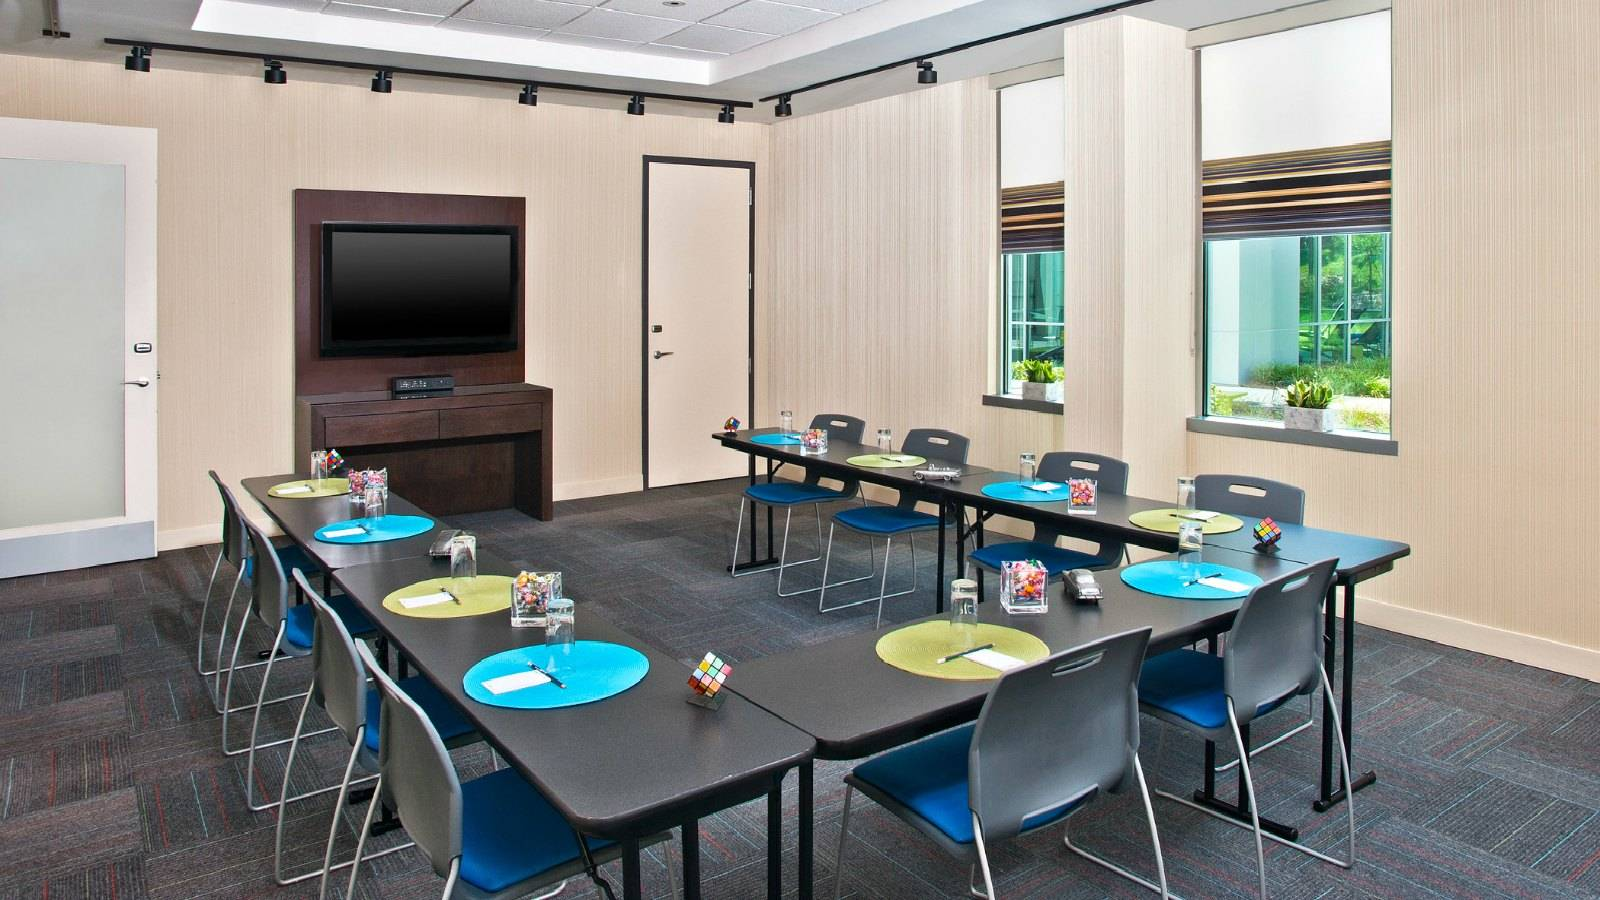 Charlotte Meeting Rooms - Tactic Meeting Room